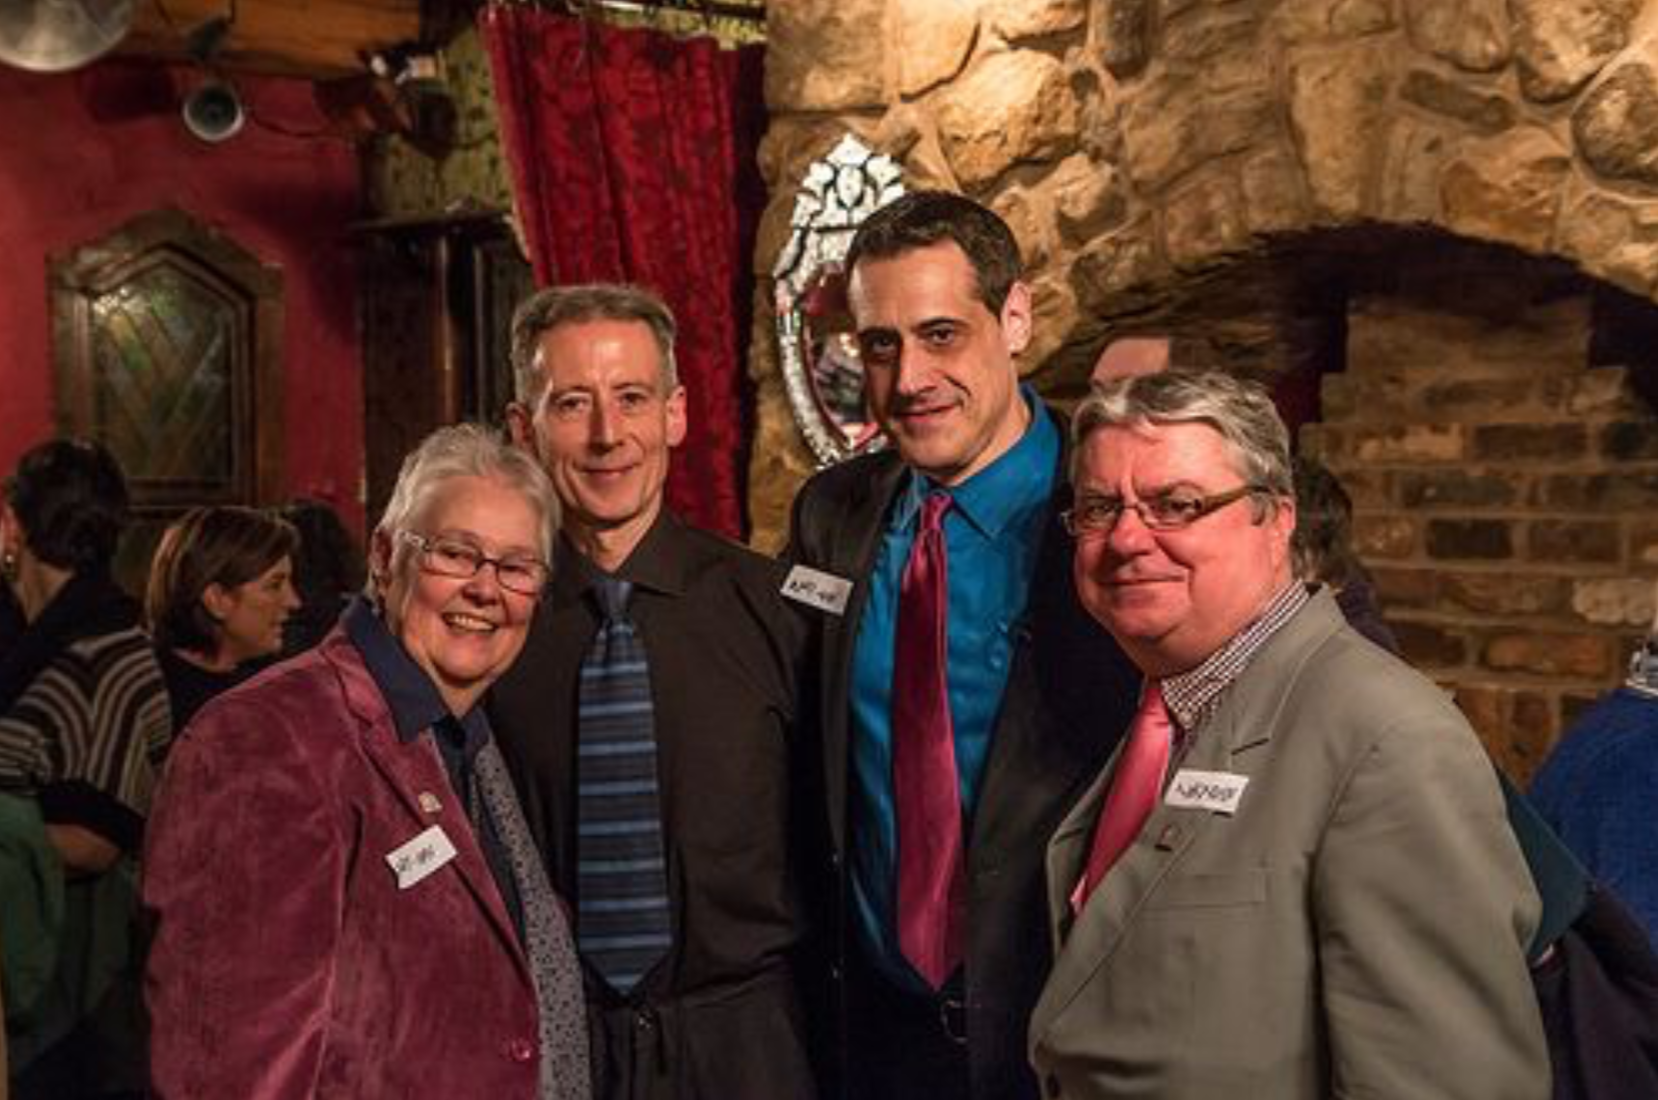 Friends and associates of OUTing the Past (l to r): Sue Sanders (Schools OUT UK), Peter Tatchell (Peter Tatchell Foundation), Stuart Milk (Harvey Milk Foundation), Tony Fenwick (Schools OUT UK)